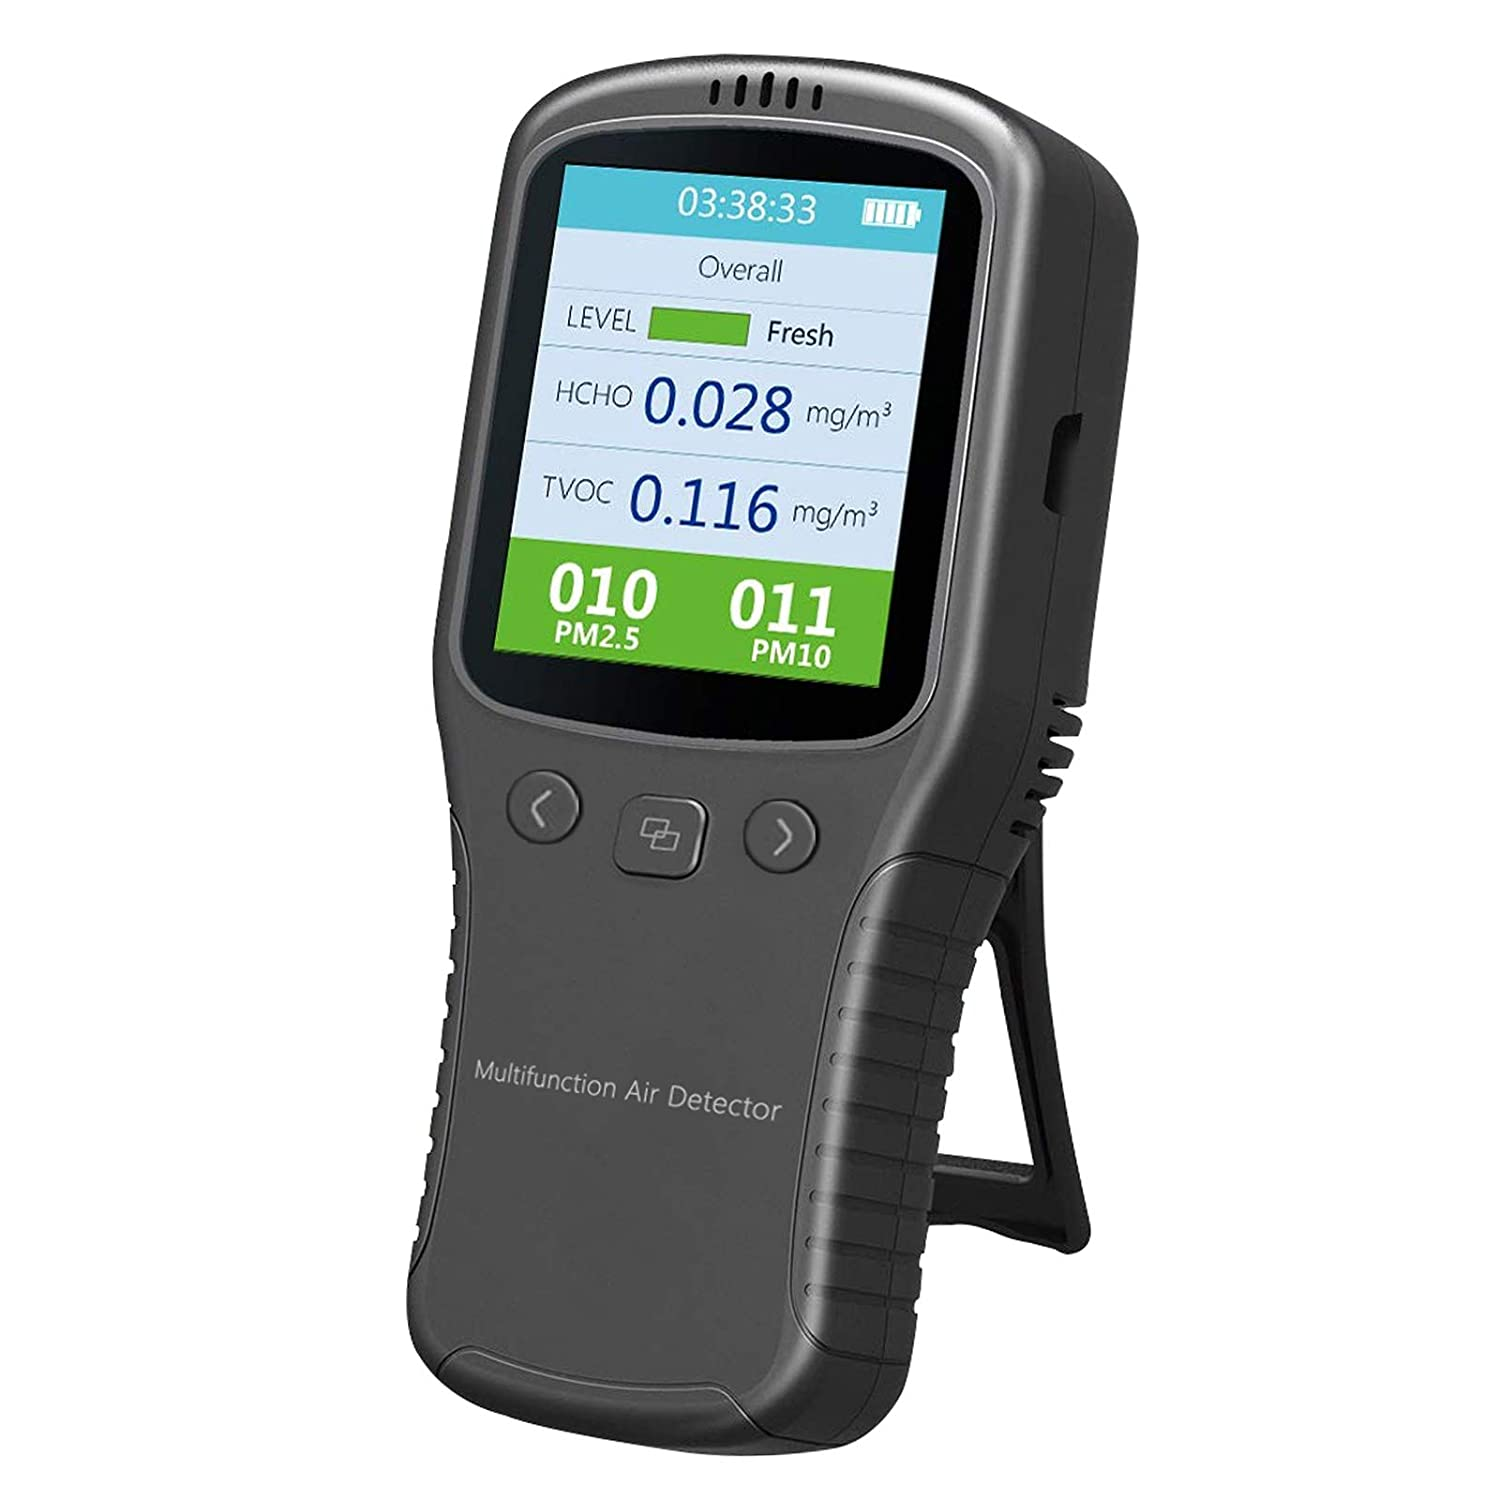 Air Quality Monitor, Formaldehyde Detector, Pollution Meter, Sensor, Tester; Detect & Test Indoor Pollution, Volatile Organic Compound Gas1Air Quality Monitor